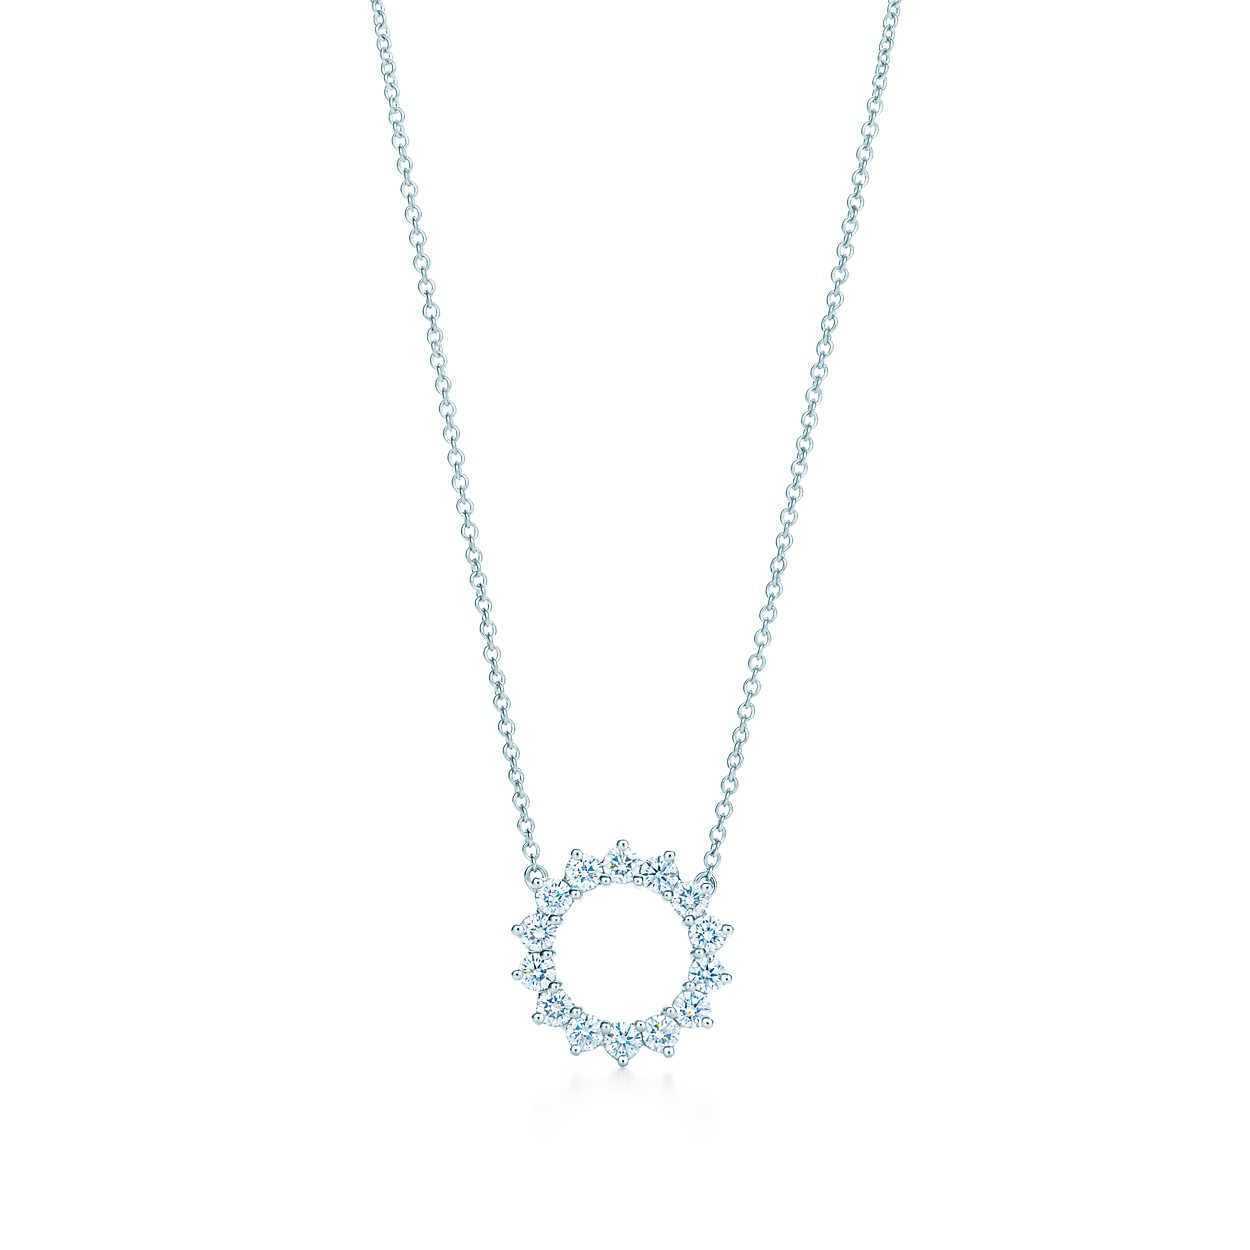 c41f446cf Open circle pendant of diamonds in platinum. | Tiffany & Co. | Jewelry